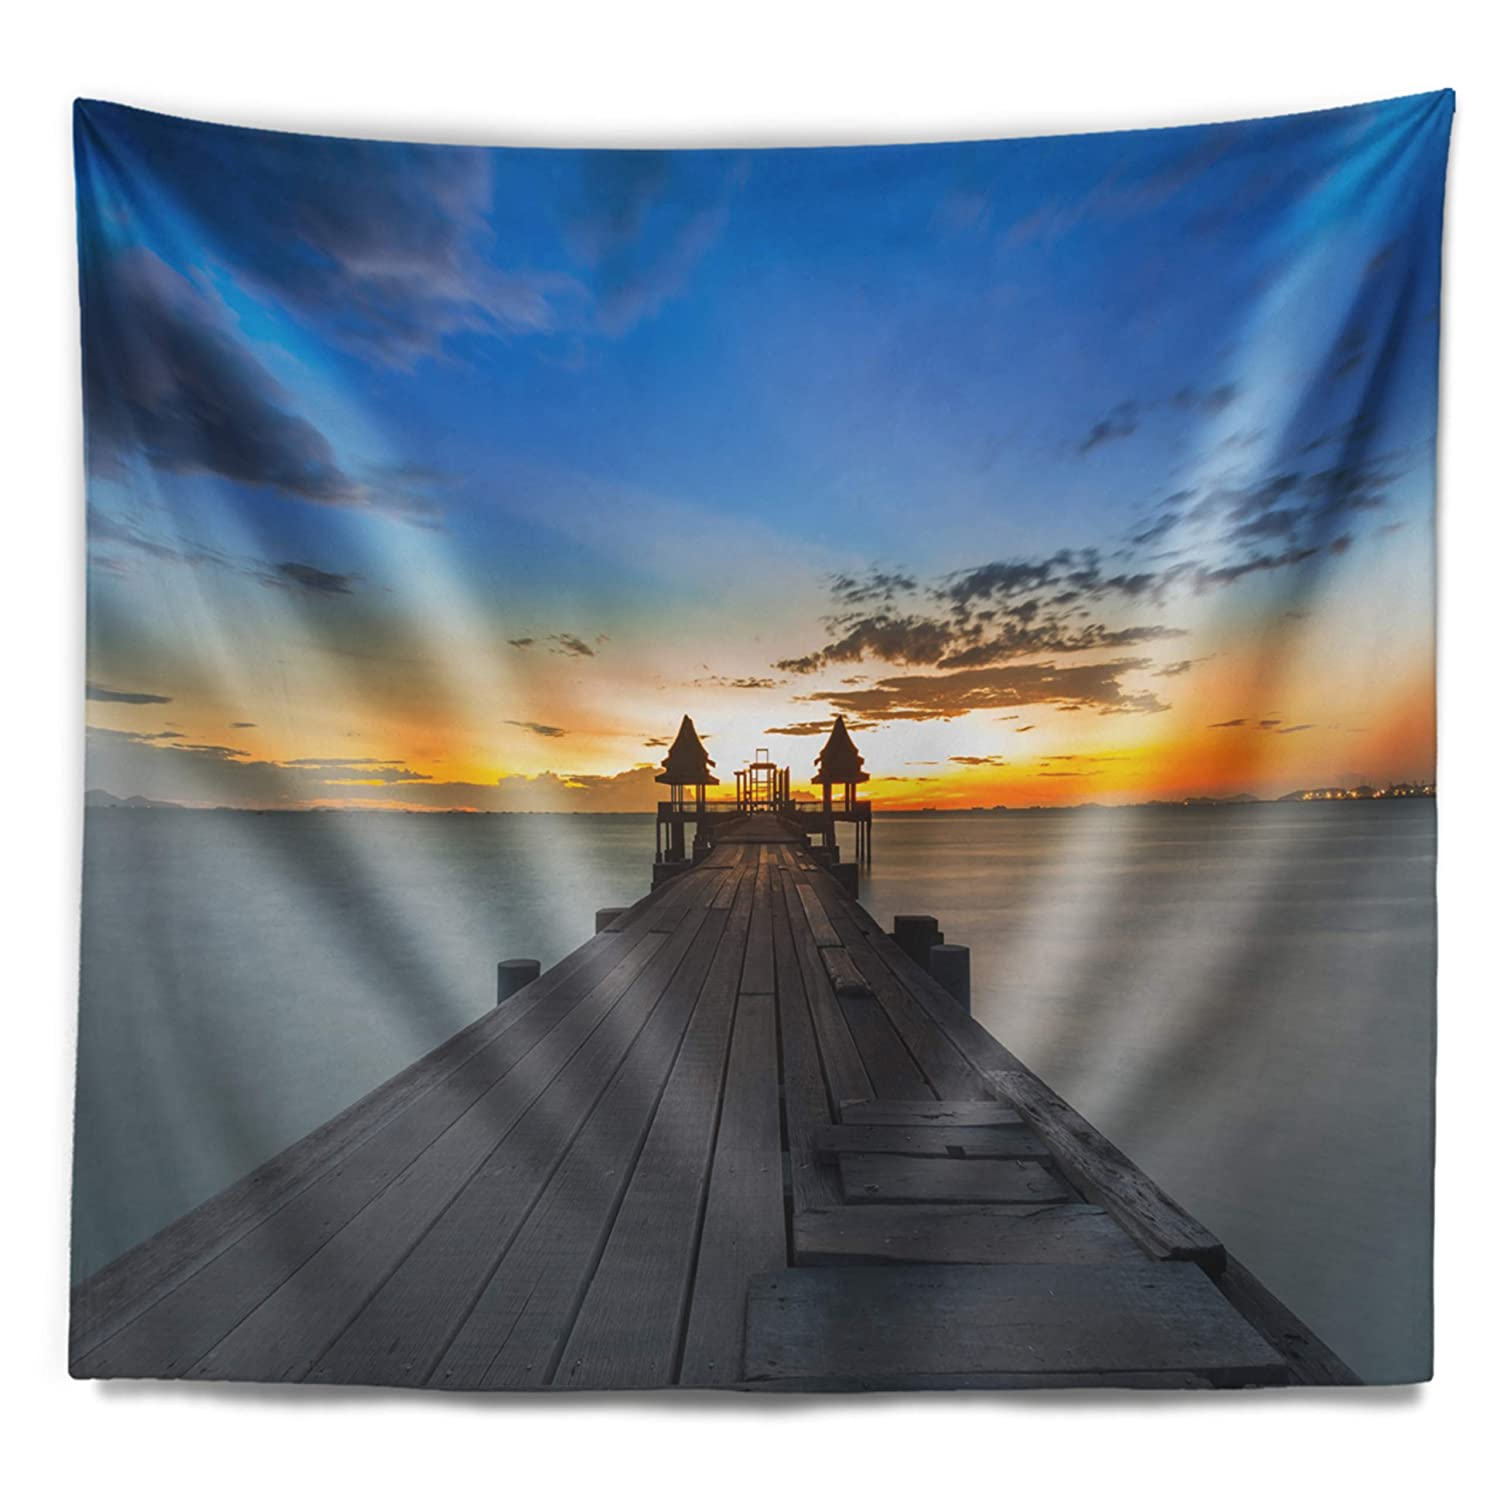 Created On Lightweight Polyester Fabric Medium: 39 in x 32 in Designart TAP10528-39-32 Long Wood Pier Leading to Colorful Sea Bridge Blanket D/écor Art for Home and Office Wall Tapestry